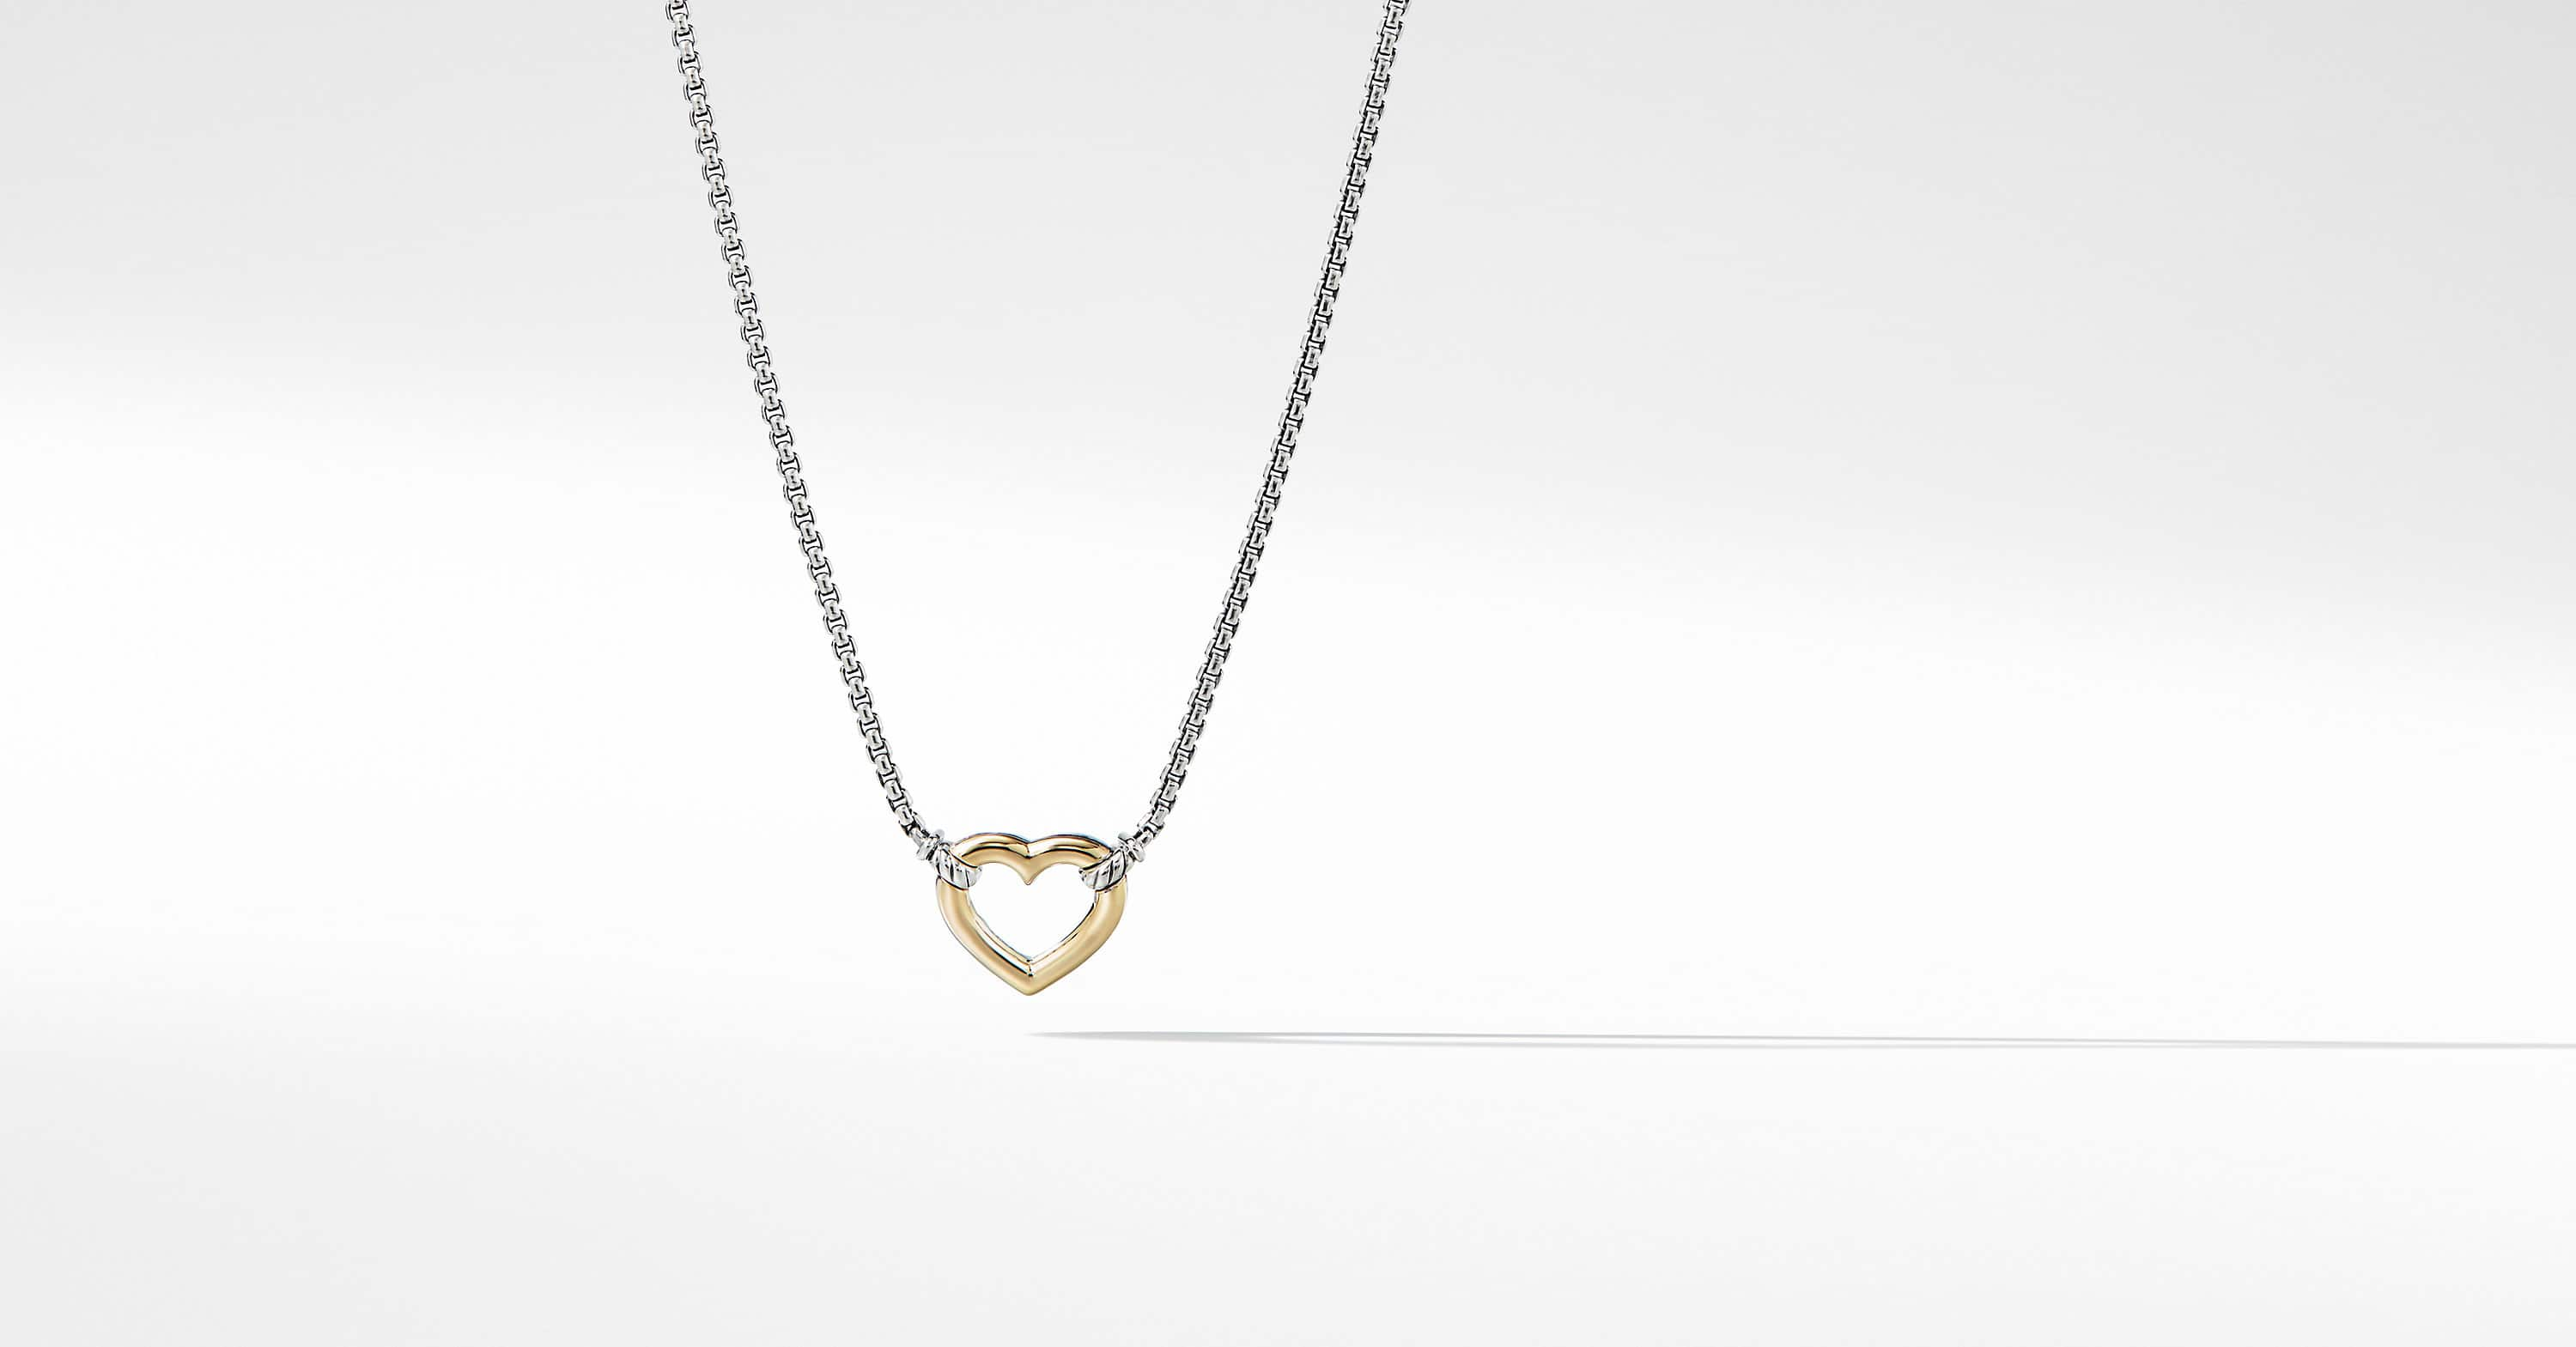 Cable Collectibles Heart Station Necklace with 18K Gold